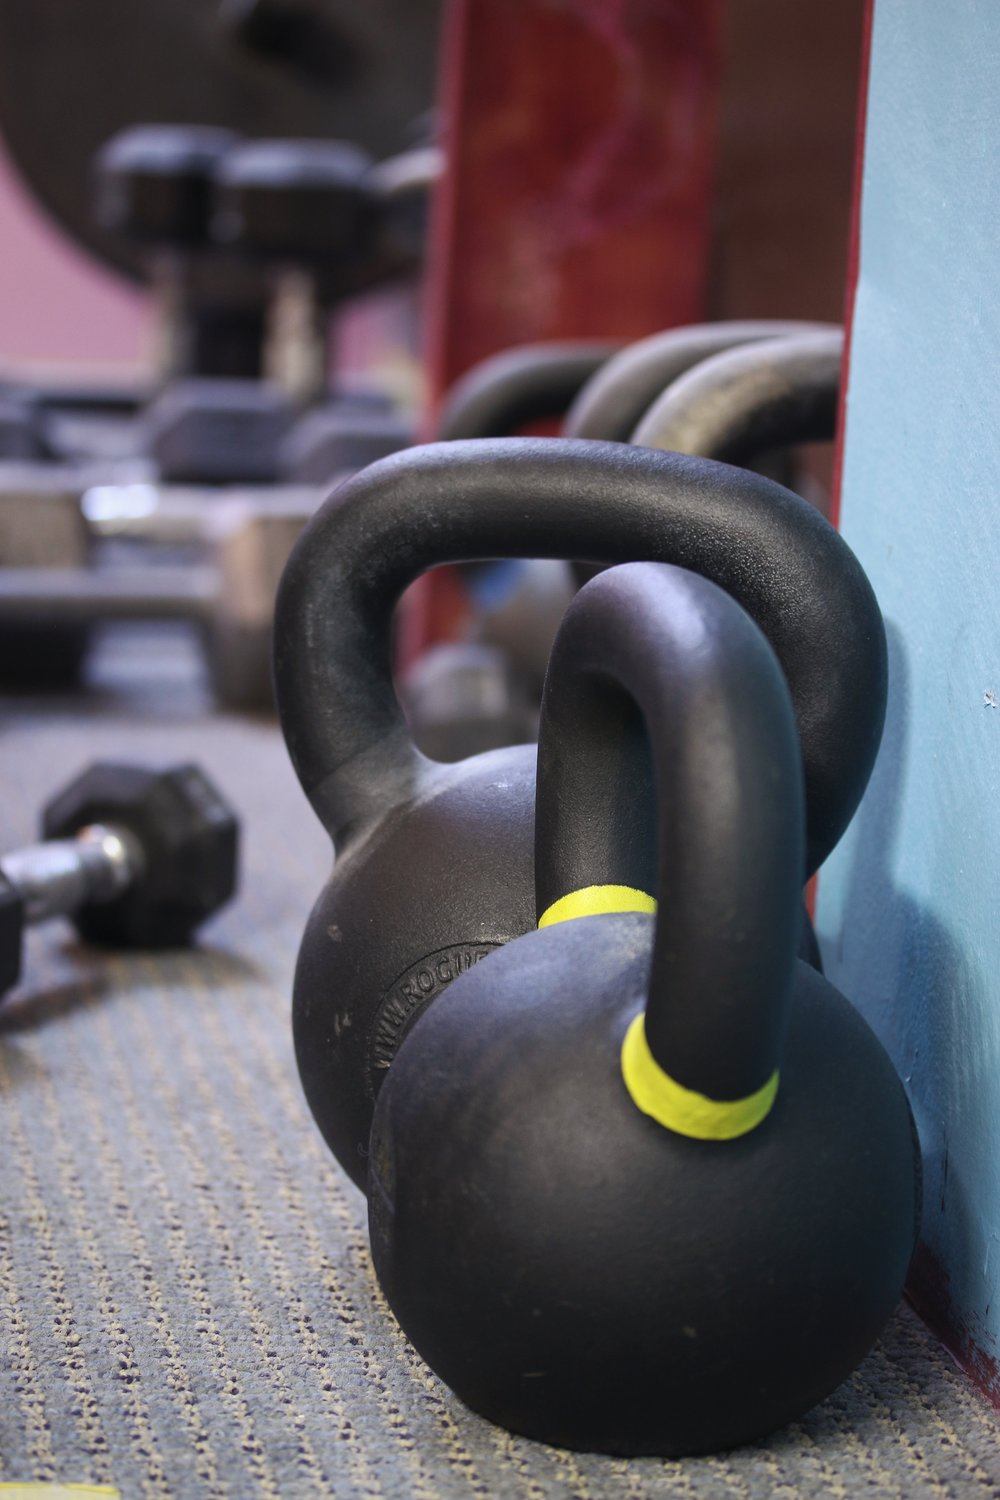 Kettlebell high pull juan rodriguez antigravity equipment climbing portland training fitness cameron apple.jpg